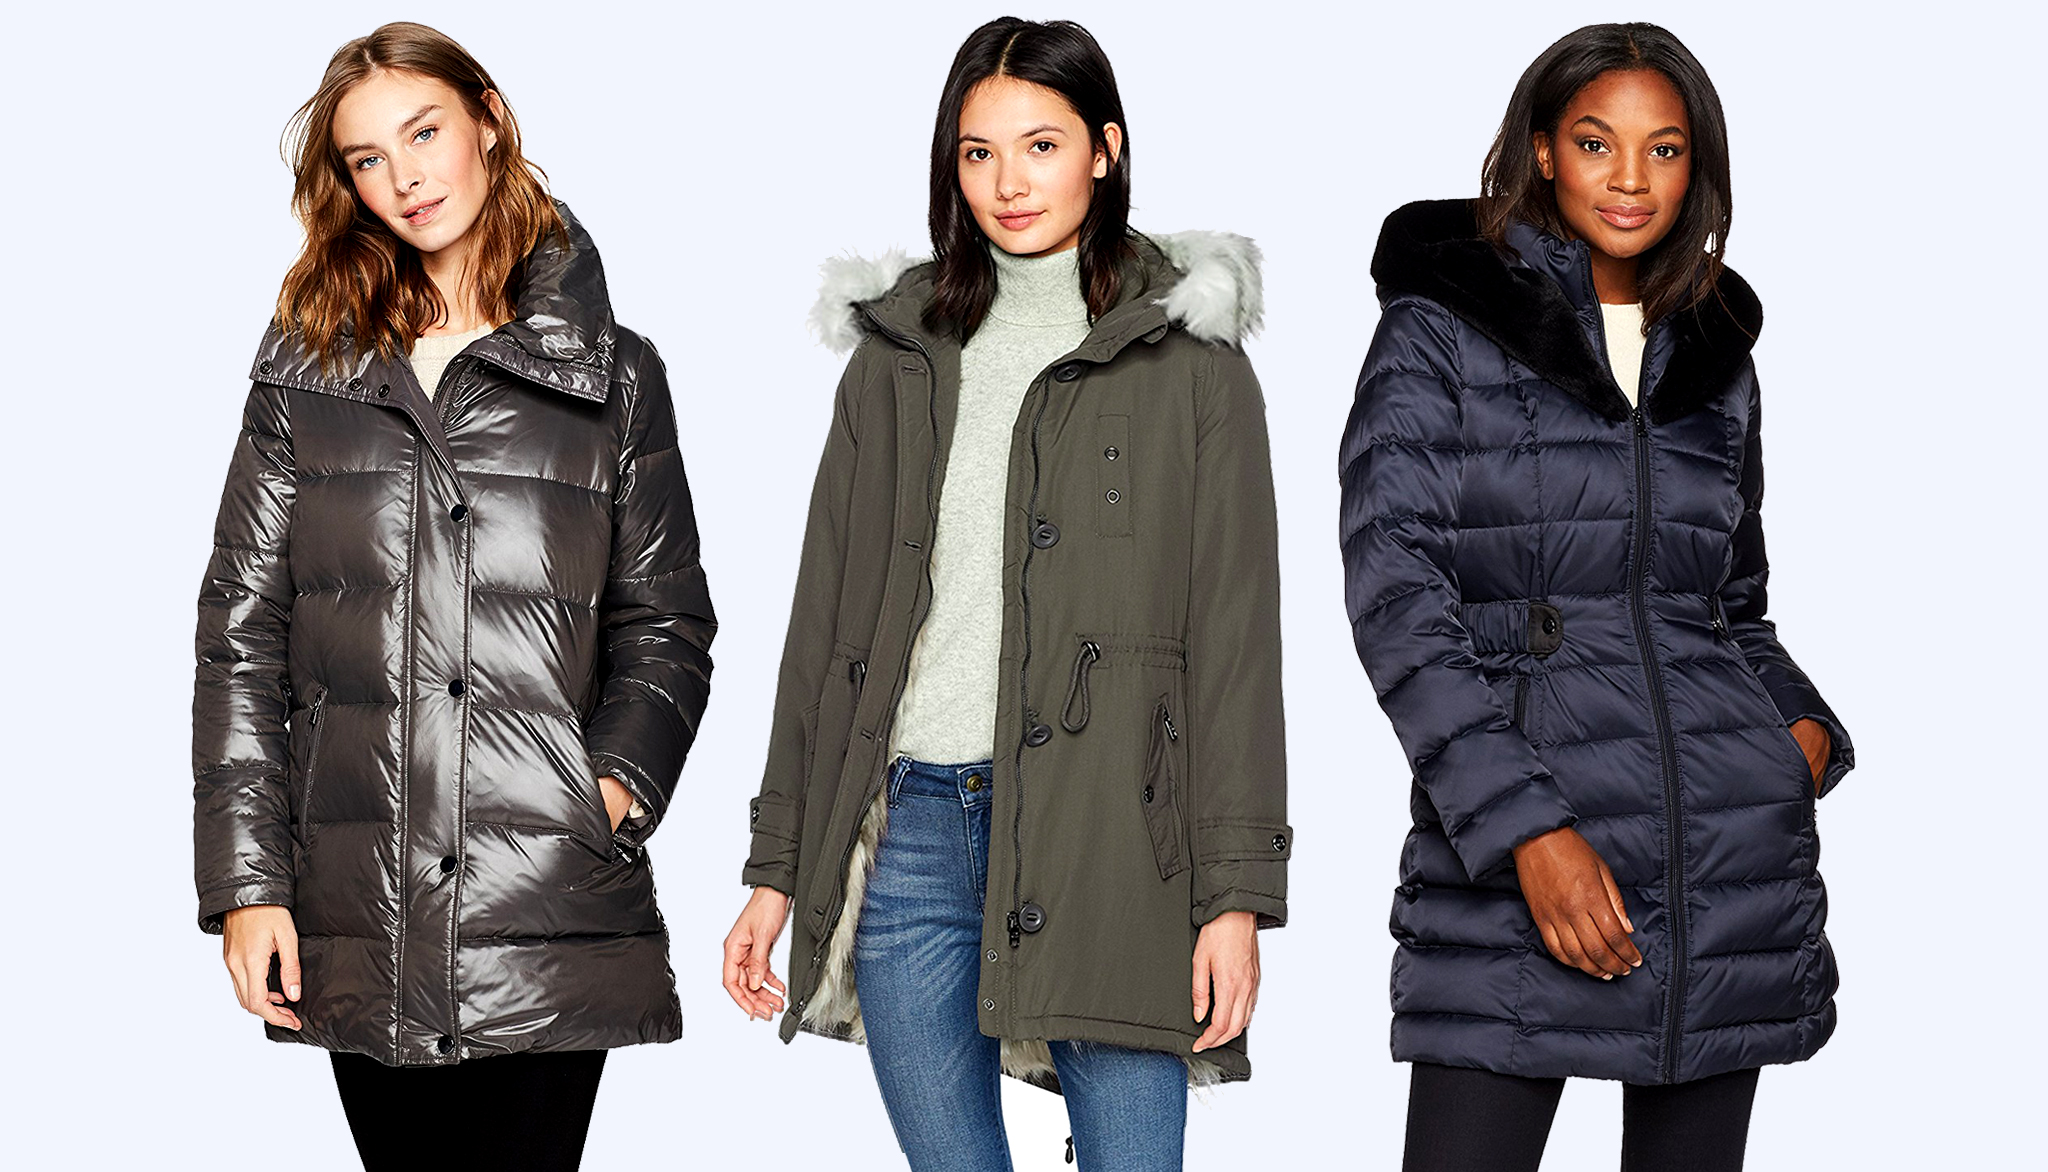 Long Winter Women's Jackets 10 warmest womenu0027s winter coats under $100 VYIRTSG